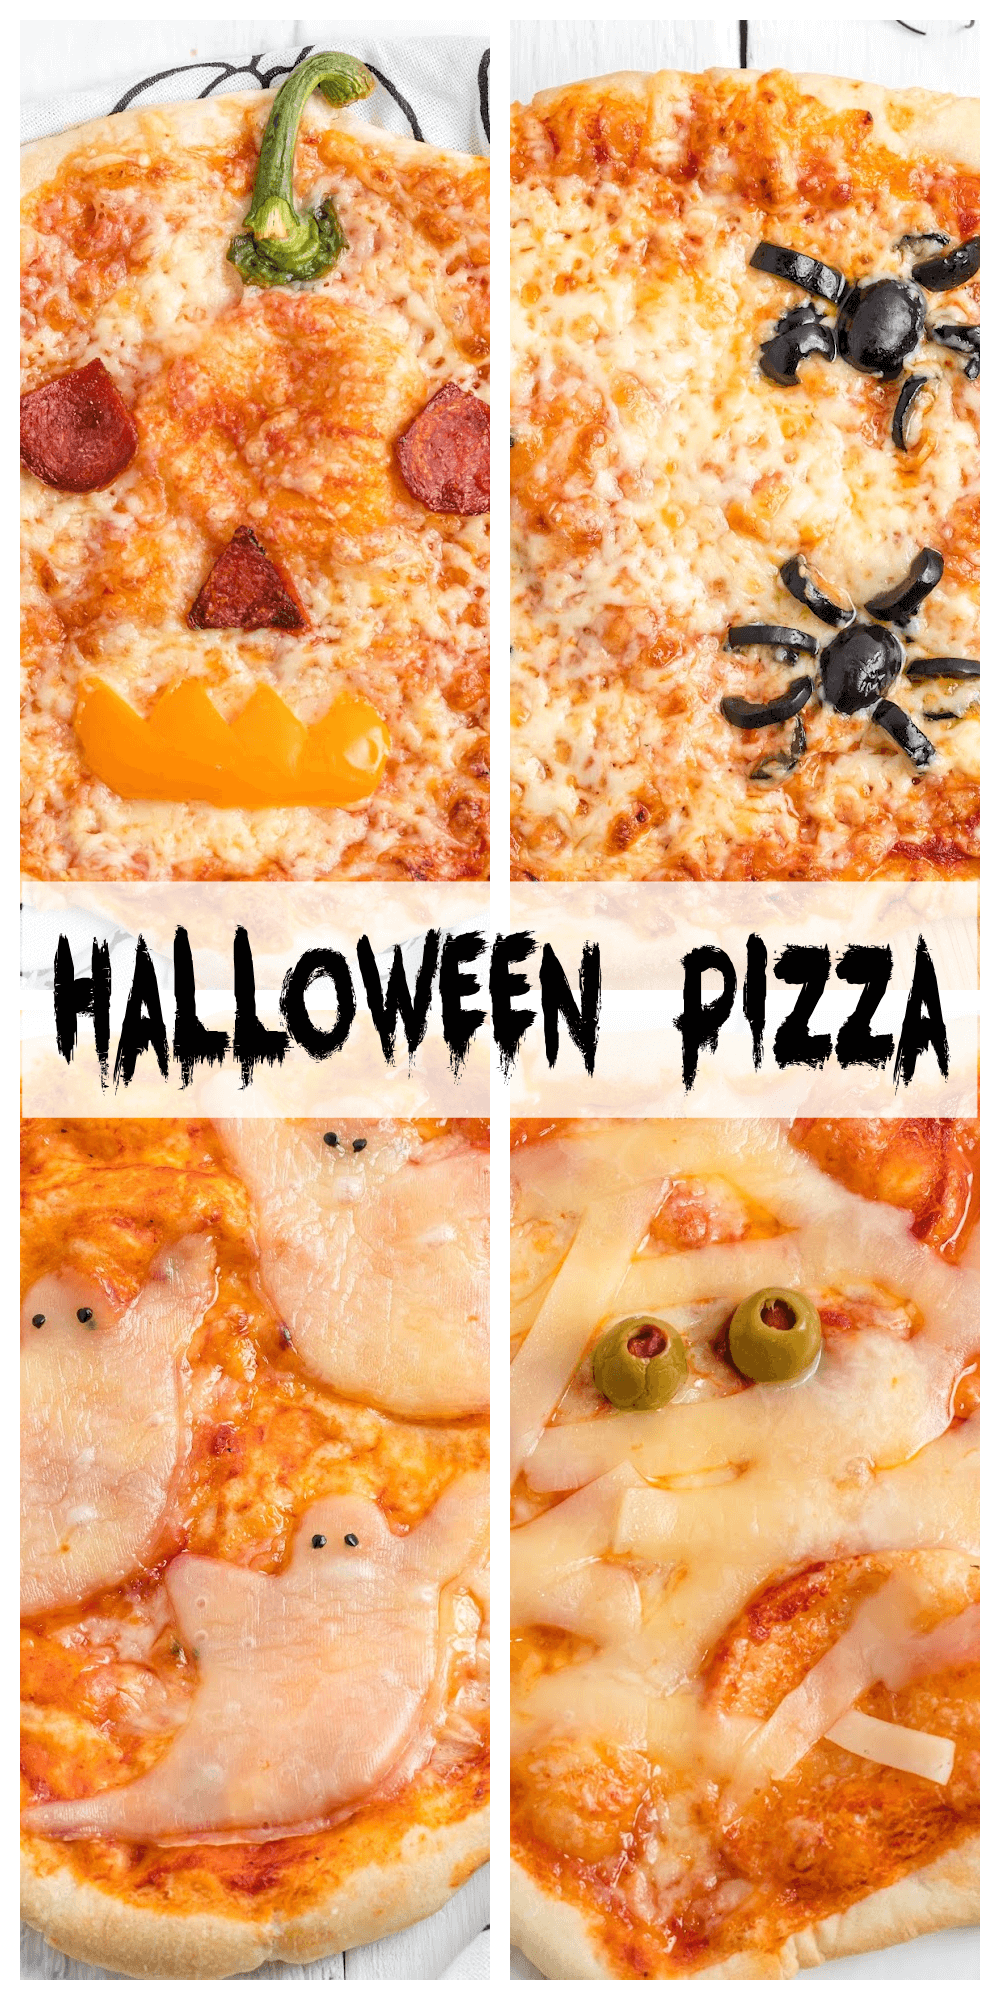 Halloween pizzas ideas for a fun halloween pizza party. Cut up the pieces ahead of time and let everyone make their own scary mini-pizza. If you're short own time on Halloween night, purchase frozen pizzas and decorate them however you like. #halloween_pizza, #fun_pizza_ideas, #halloween_themed_pizza